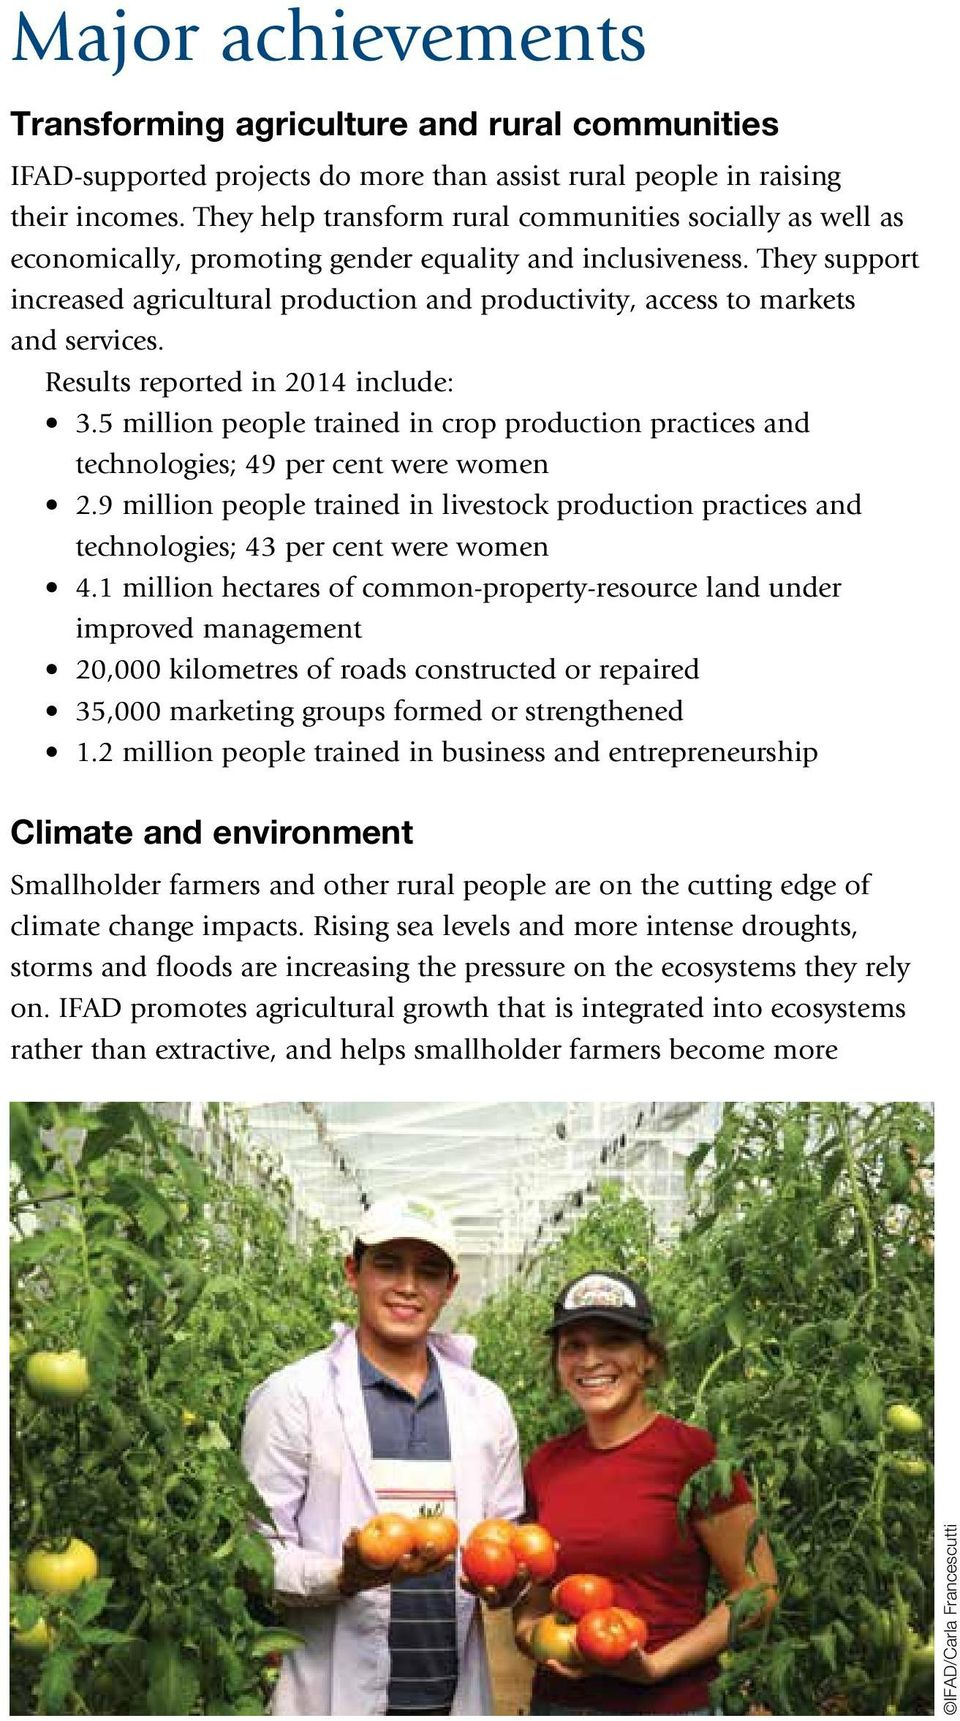 They support increased agricultural production and productivity, access to markets and services. Results reported in 2014 include: 3.